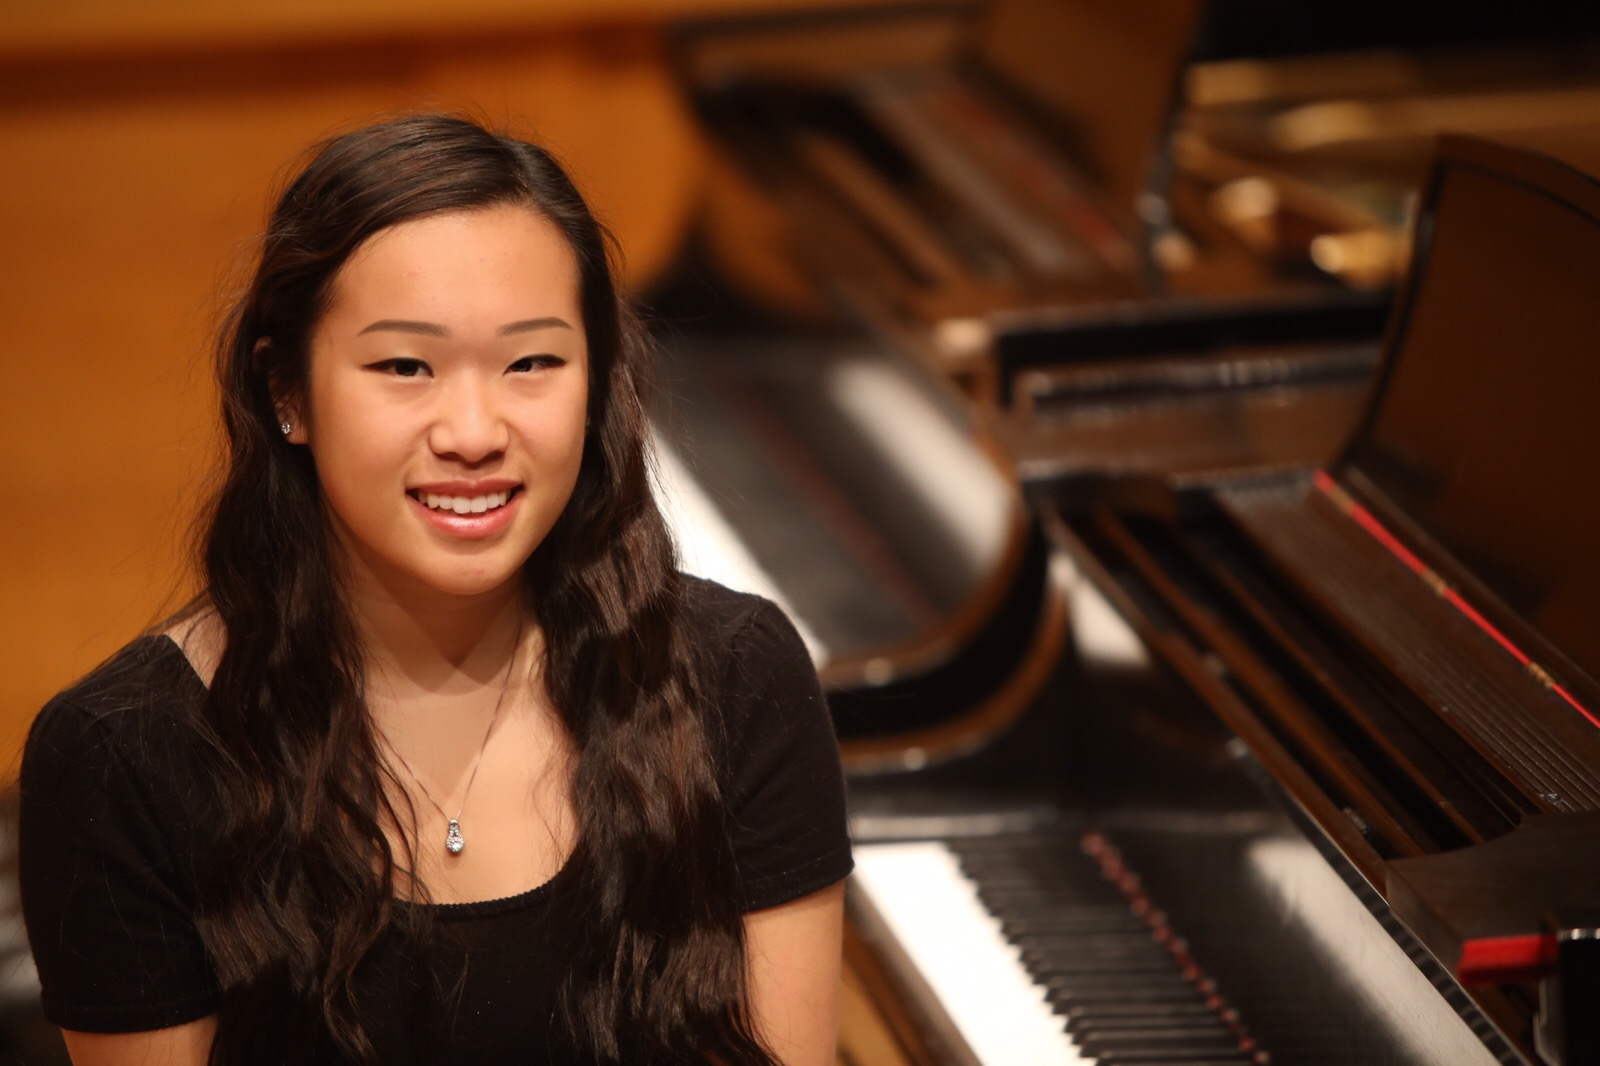 Piano soloist Brianna Tang joins the orchestra on May 1.